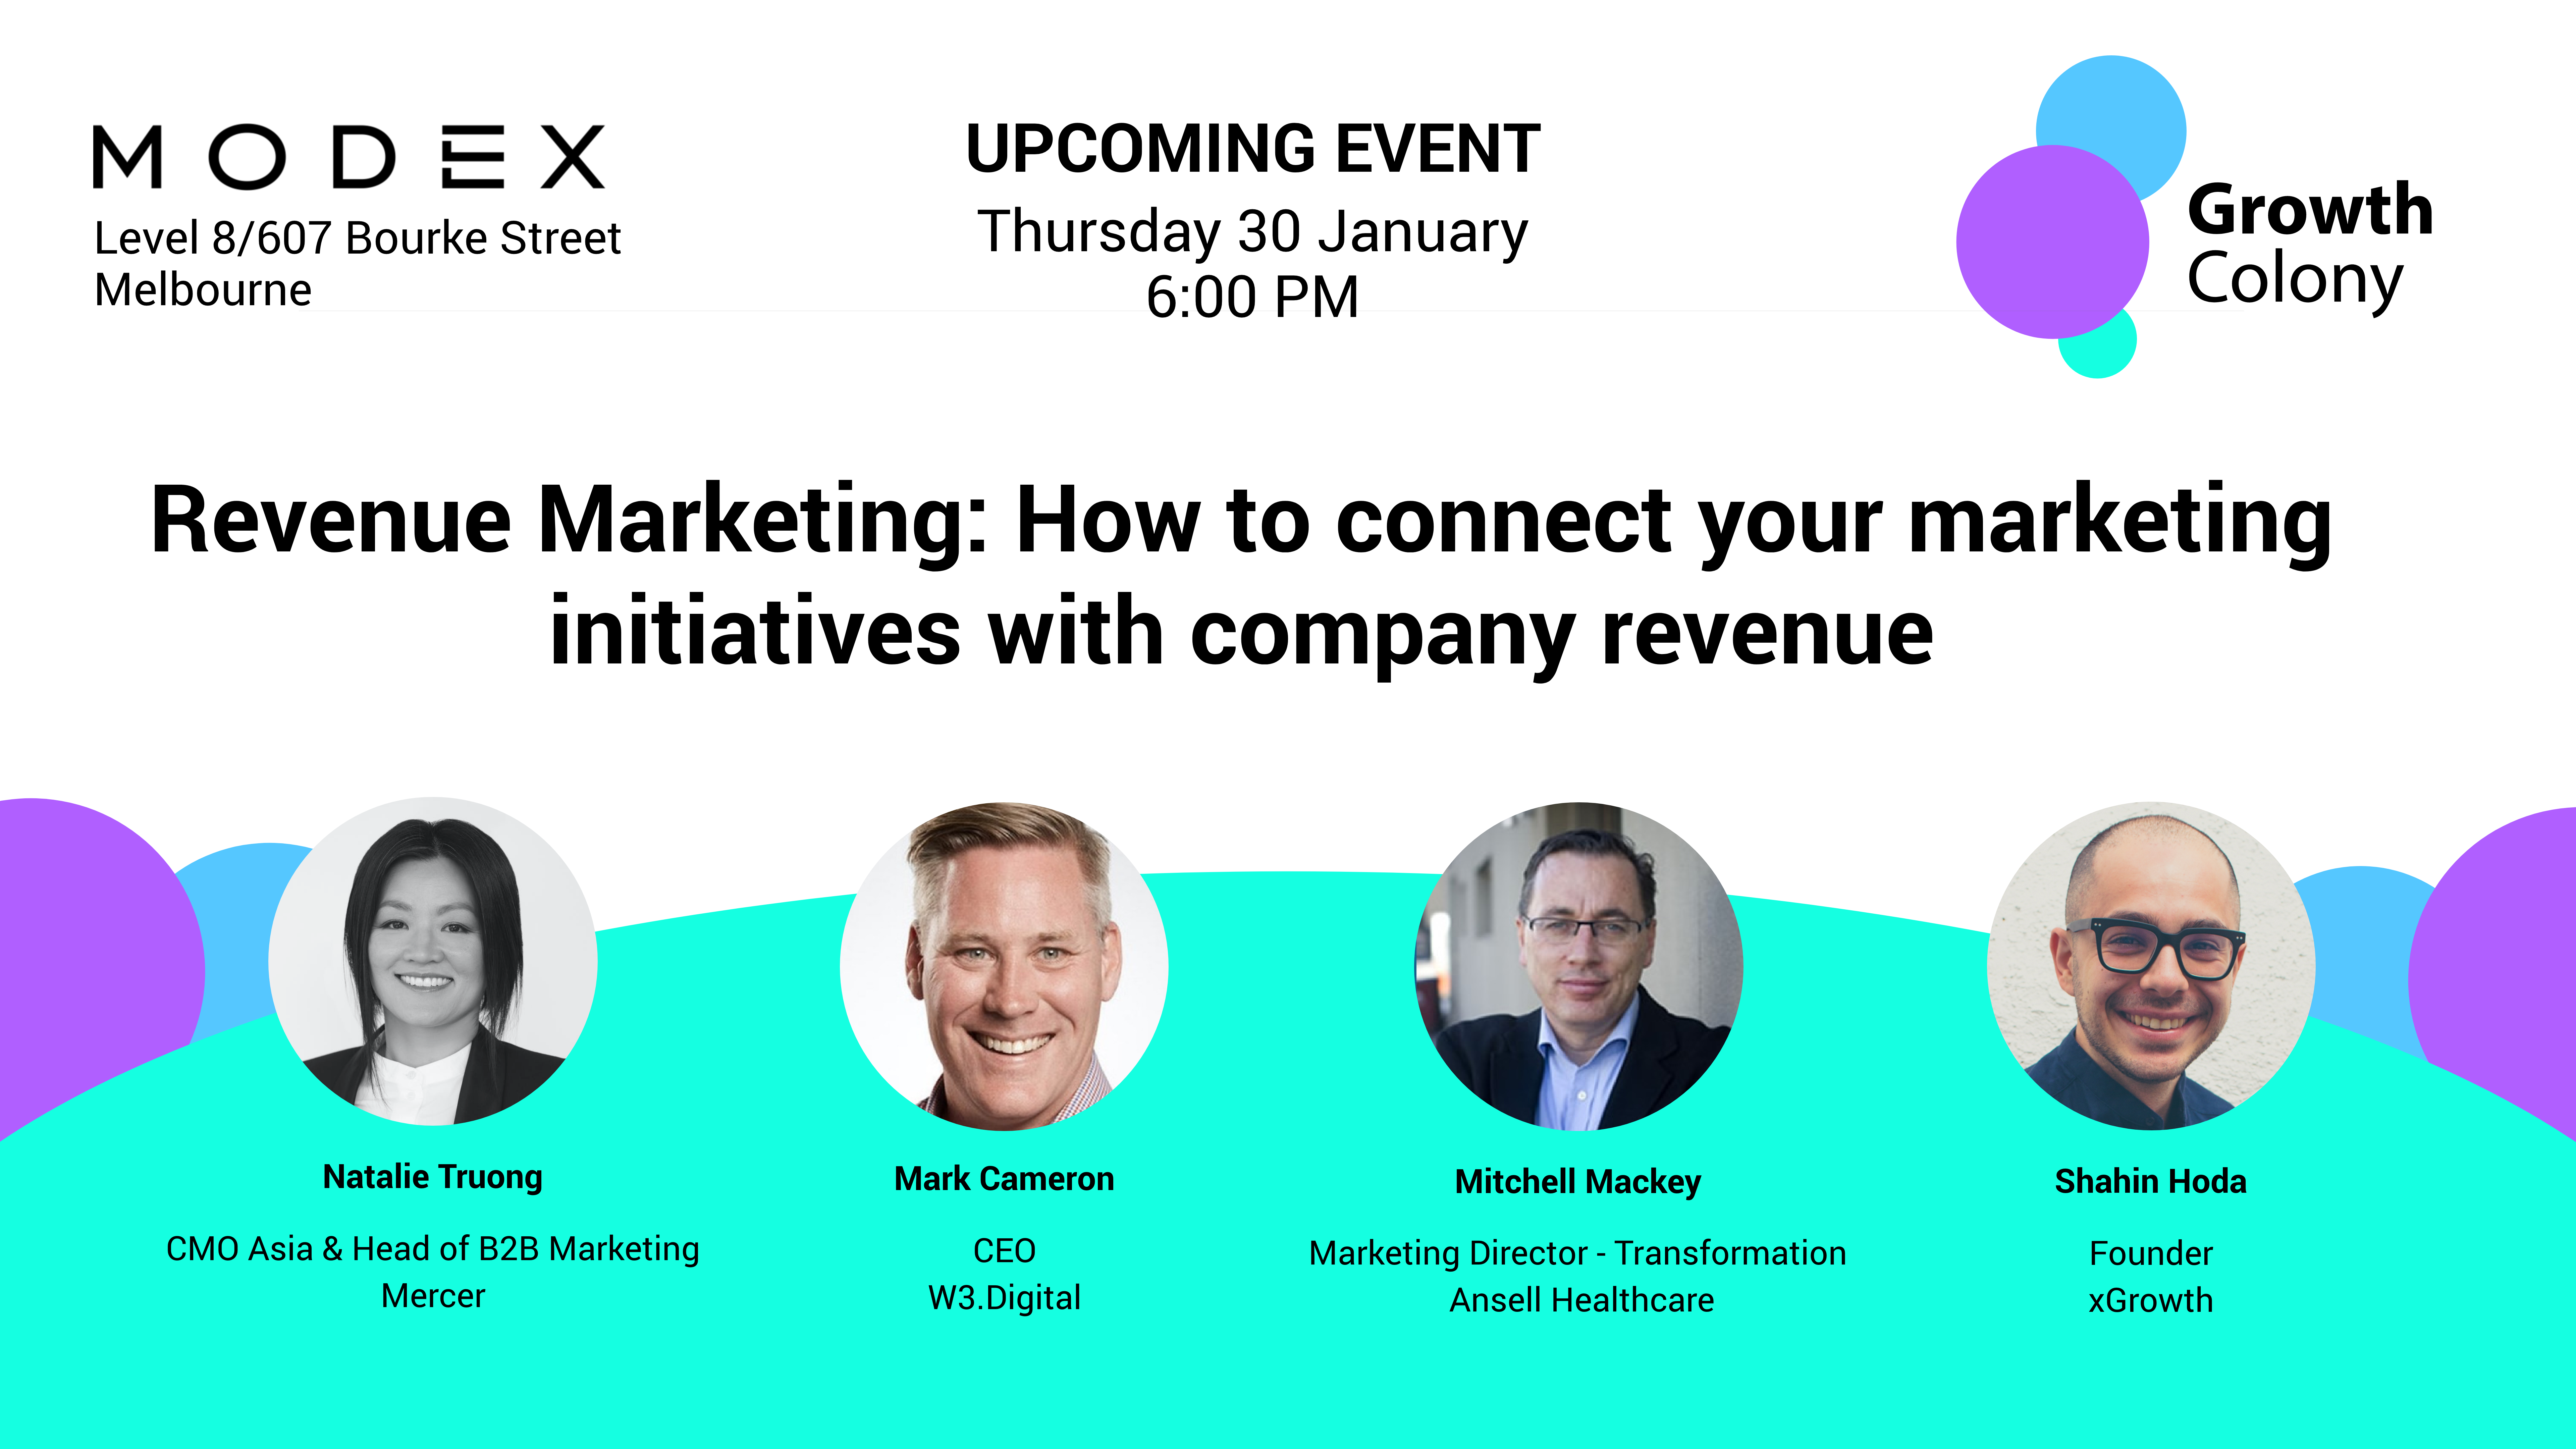 Revenue Marketing: How to connect your marketing initiatives with company revenue